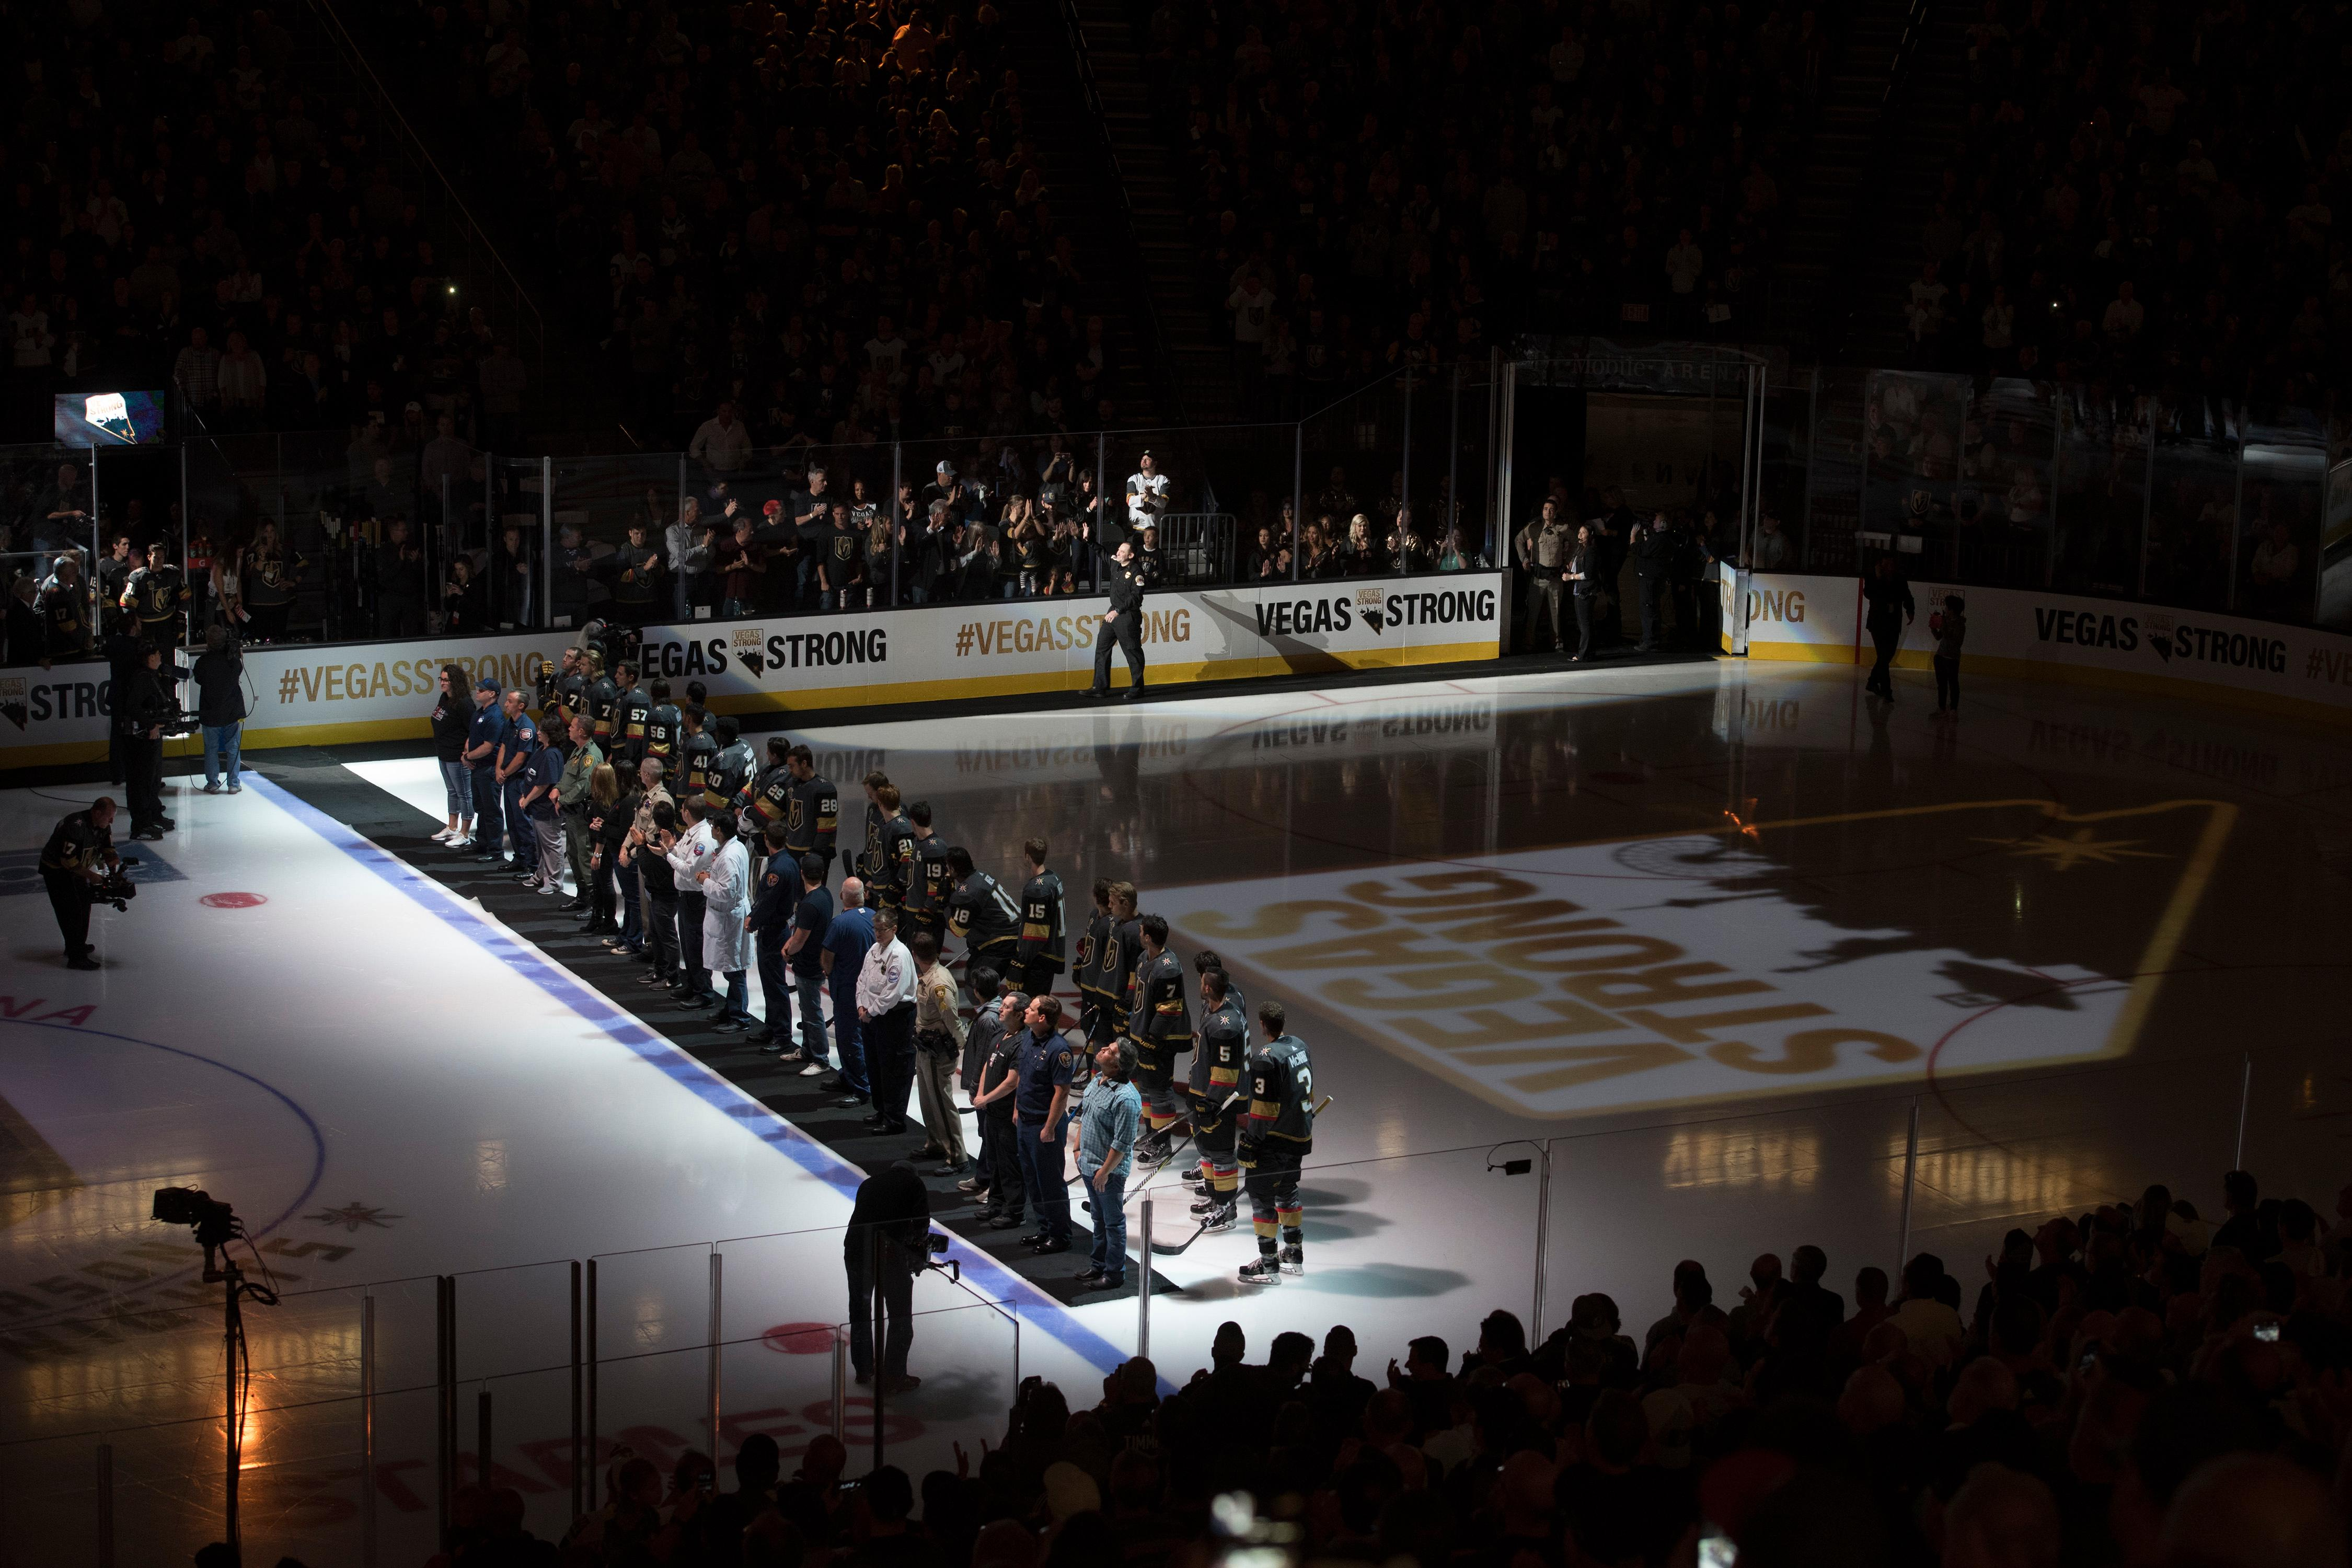 First responders and medical personnel involved in the October 1st tragedy are introduced and escorted by the Vegas Golden Knights before the Knights home opener against the Arizona Coyotes Tuesday, Oct. 10, 2017, at the T-Mobile Arena. The Knights won 5-2 to extend their winning streak to 3-0. CREDIT: Sam Morris/Las Vegas News Bureau